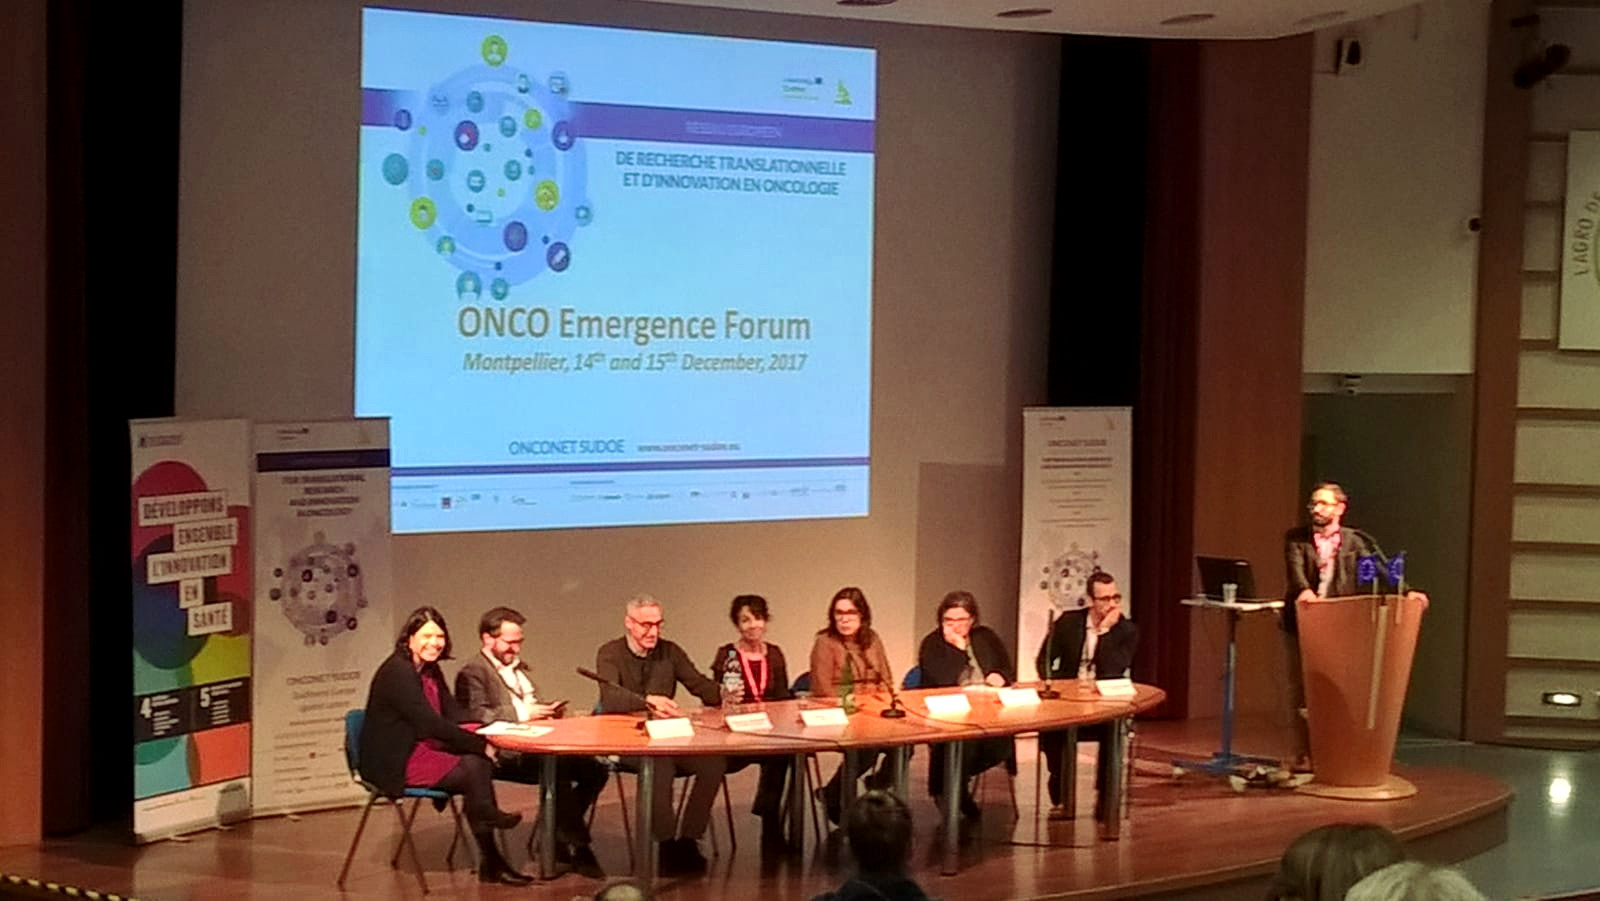 Onco Emergence Forum Montpellier